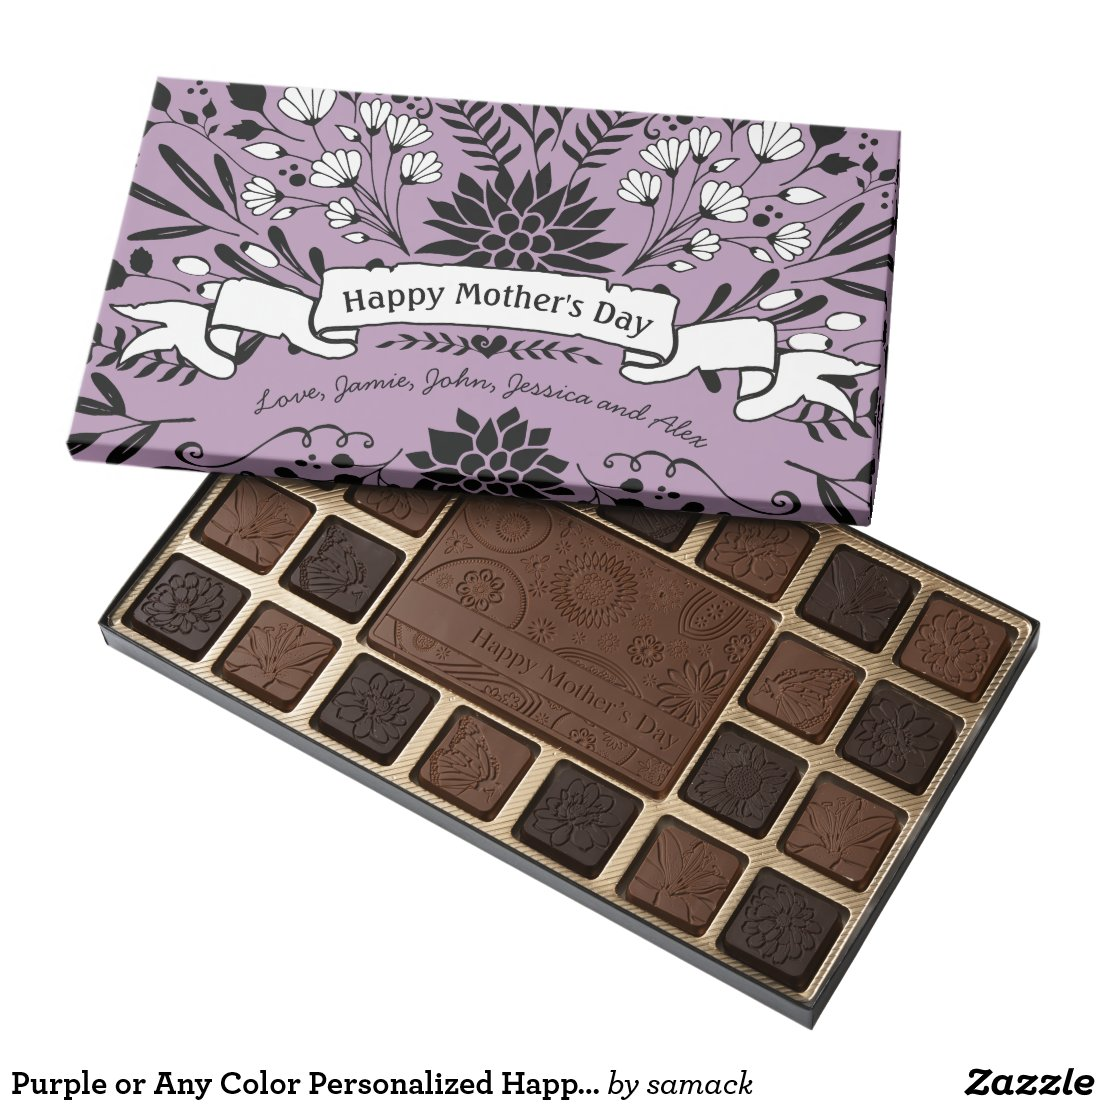 Purple or Any Color Personalized Happy Mothers Day 45 Piece Box Of Chocolates